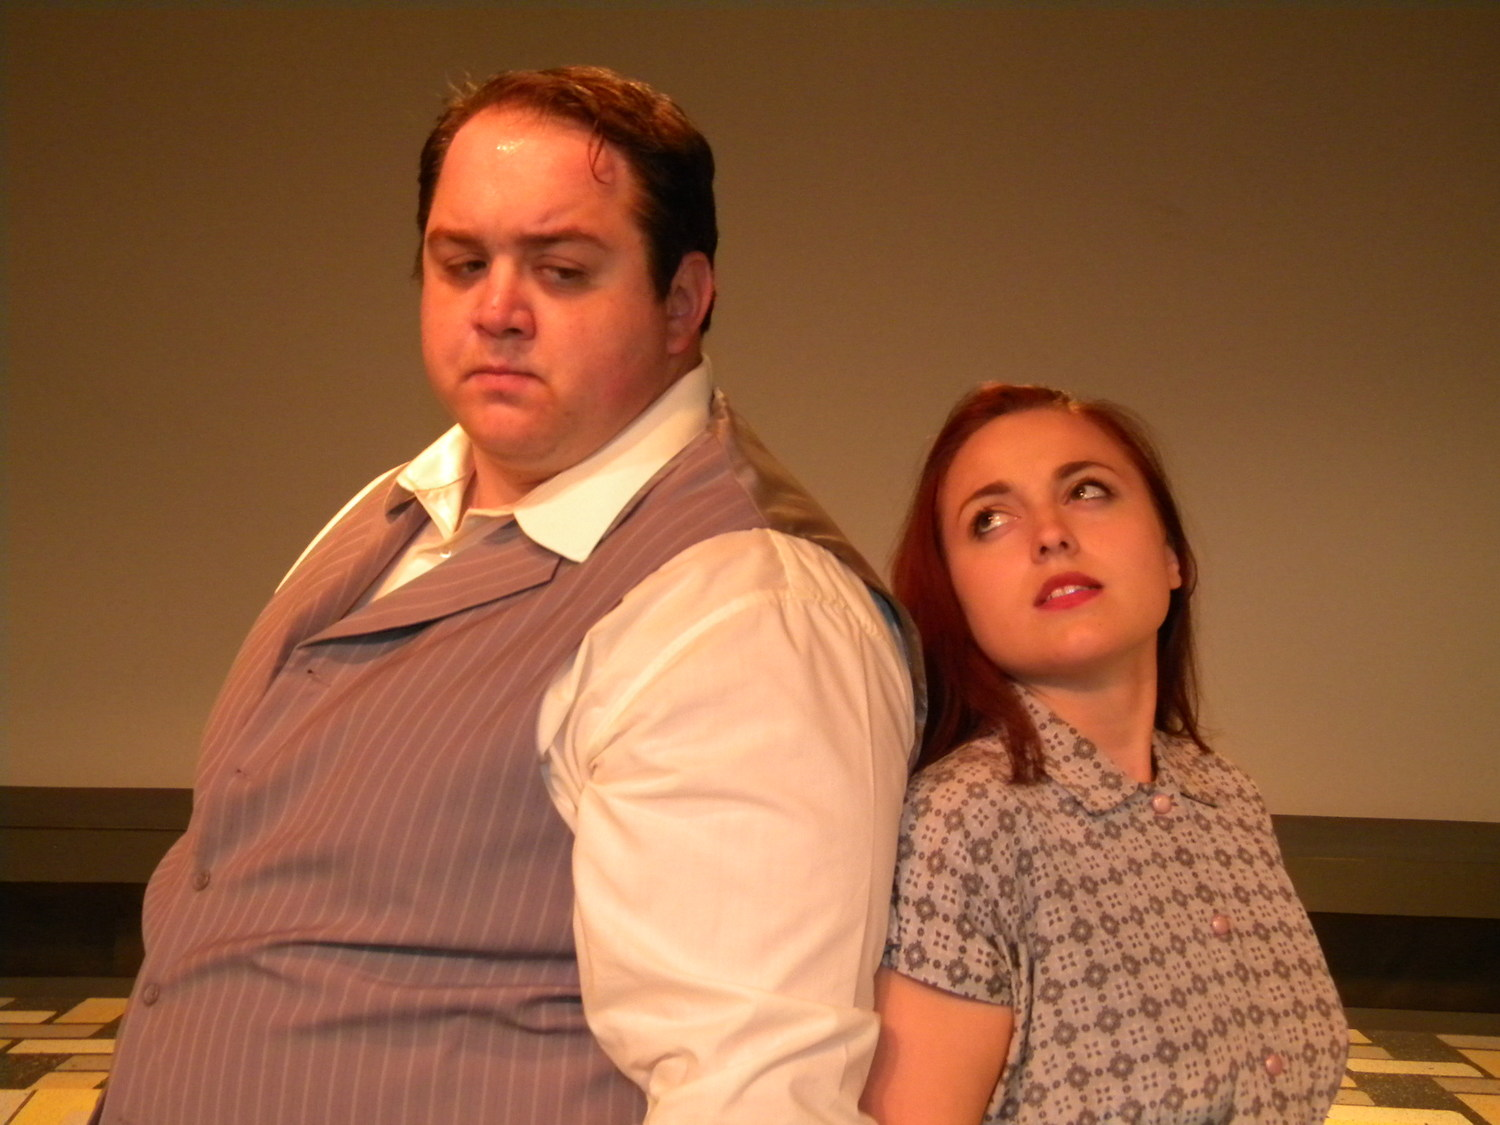 BWW Review: Miller's CRUCIBLE Roars Its Power at CP